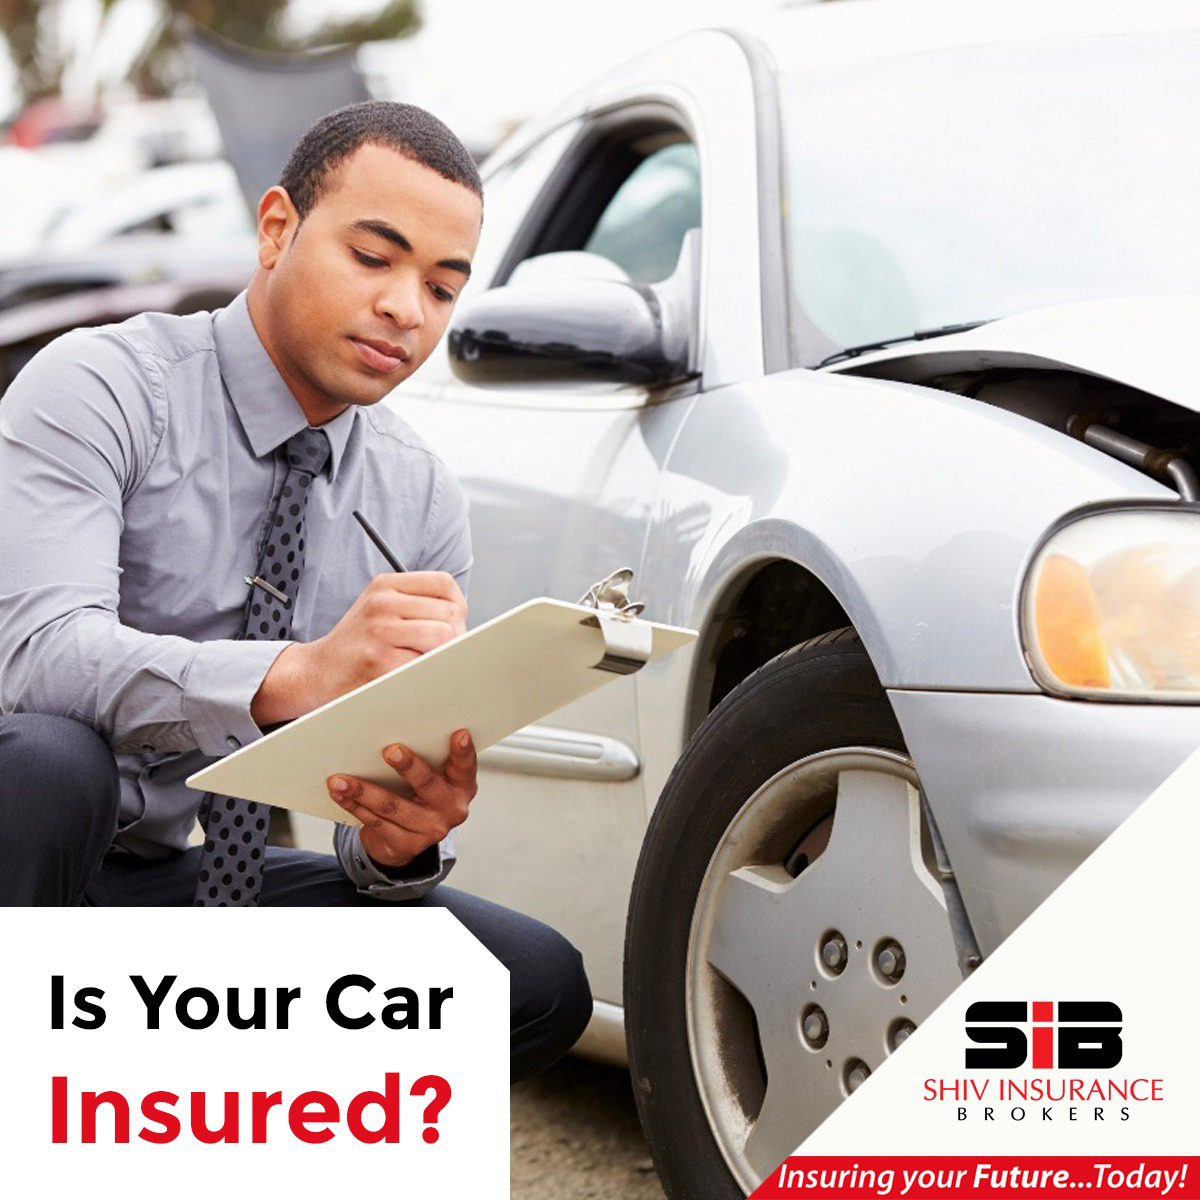 Insure Your Motor Vehicles With Sib And Get Reminders For Your Auto Renewals Call Us Today 255 766 002 022 Info Shiv Car Accident Lawyer Car Car Accident